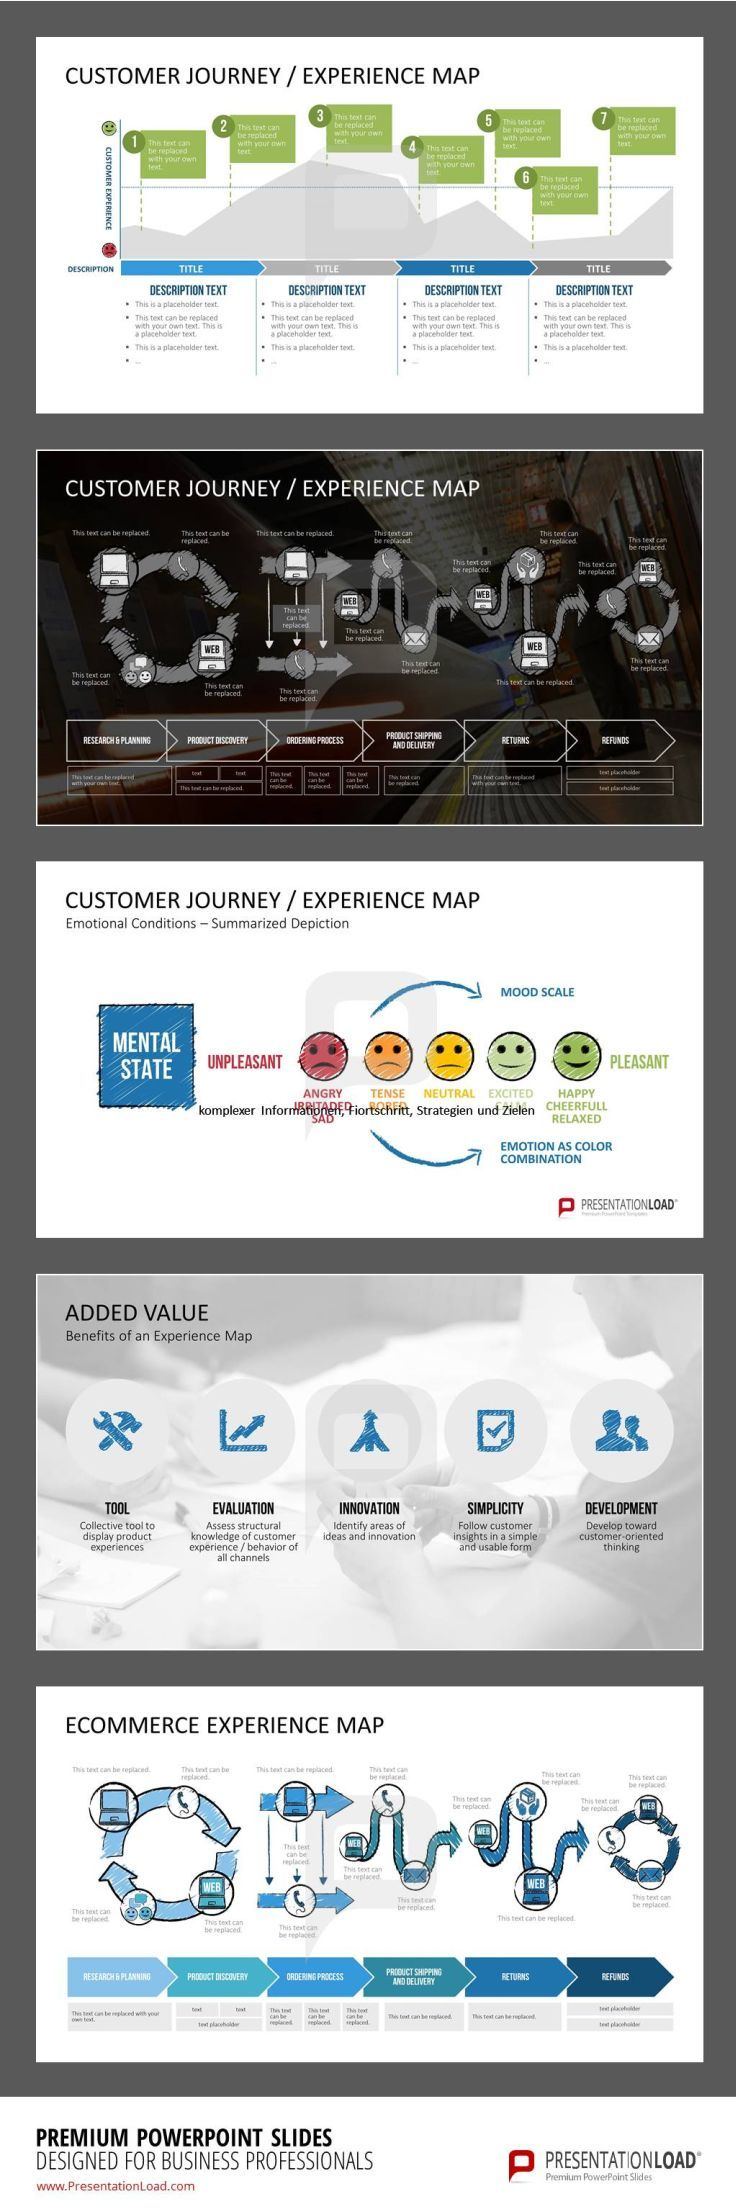 Customer Journey/ Experience Map